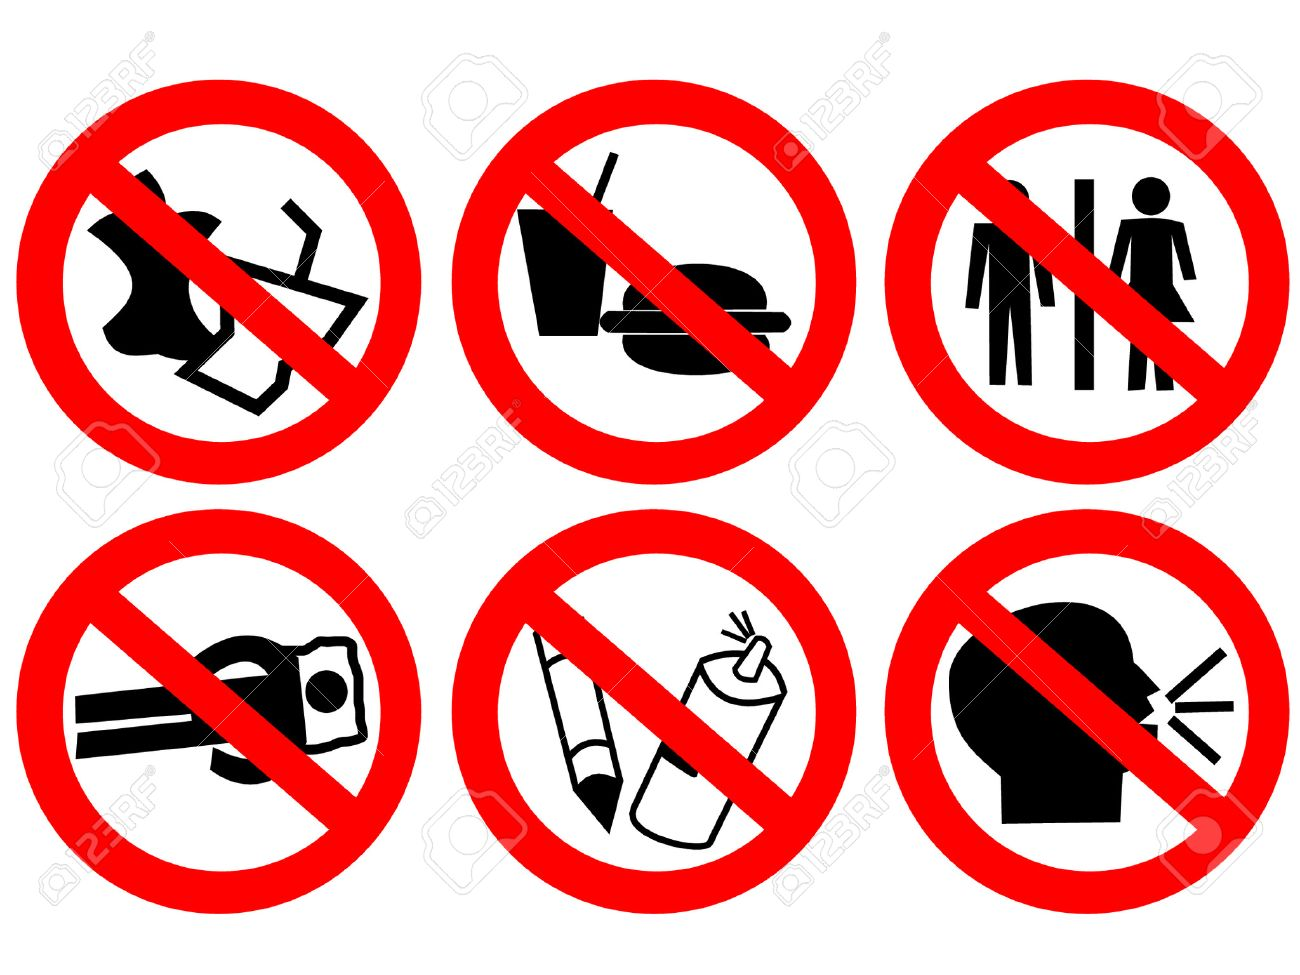 Что такое eating prohibitted 10 фотография